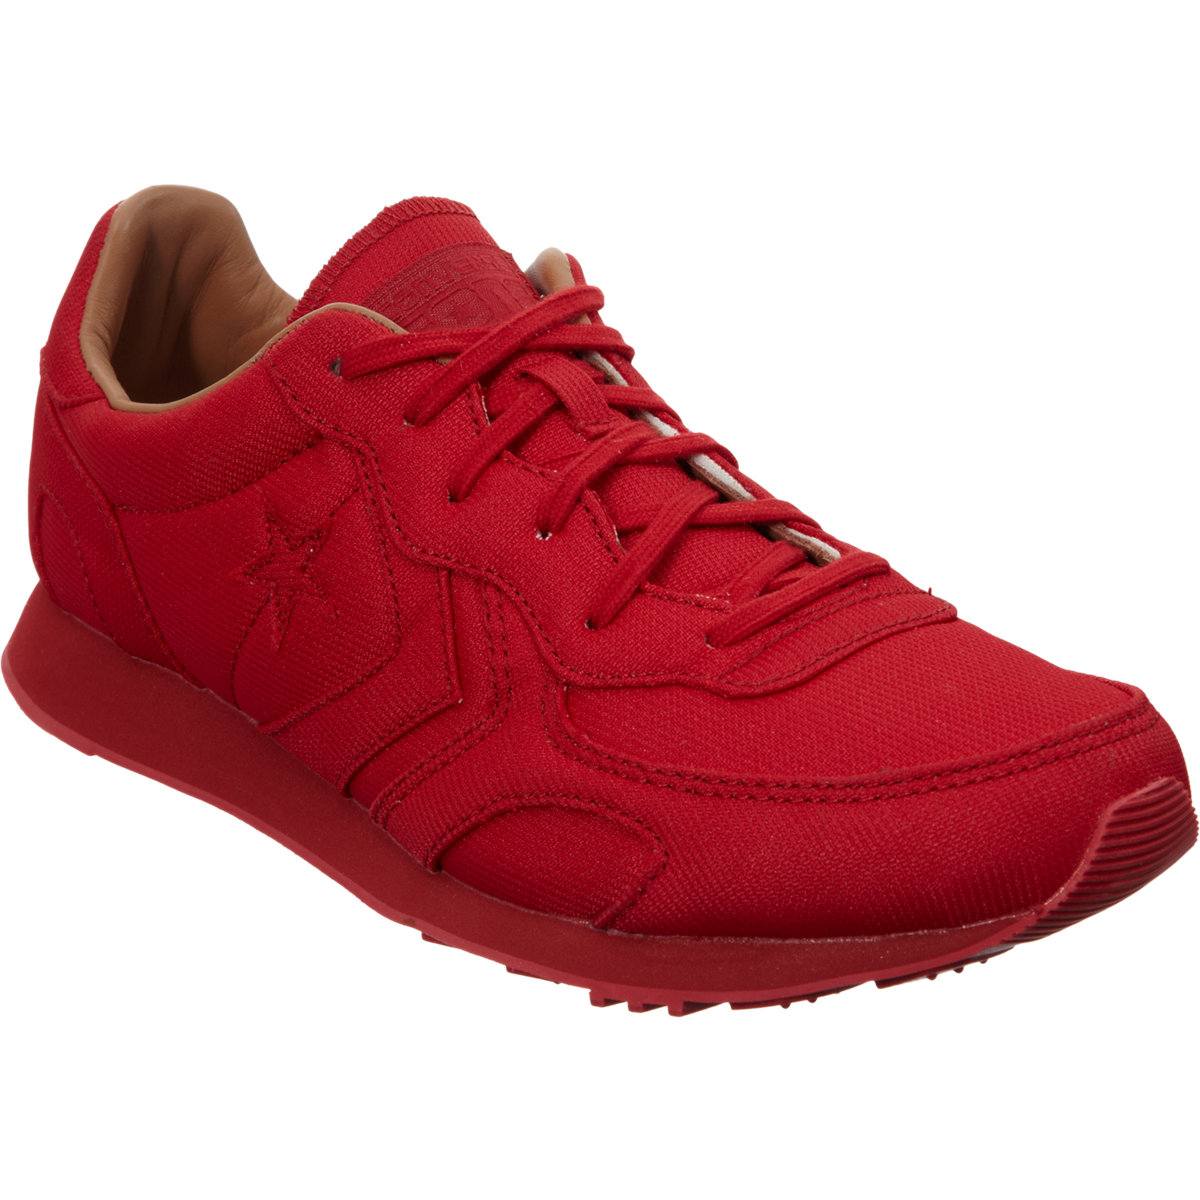 43613b3e141 Lyst - Converse Auckland Racer Ox C in Red for Men